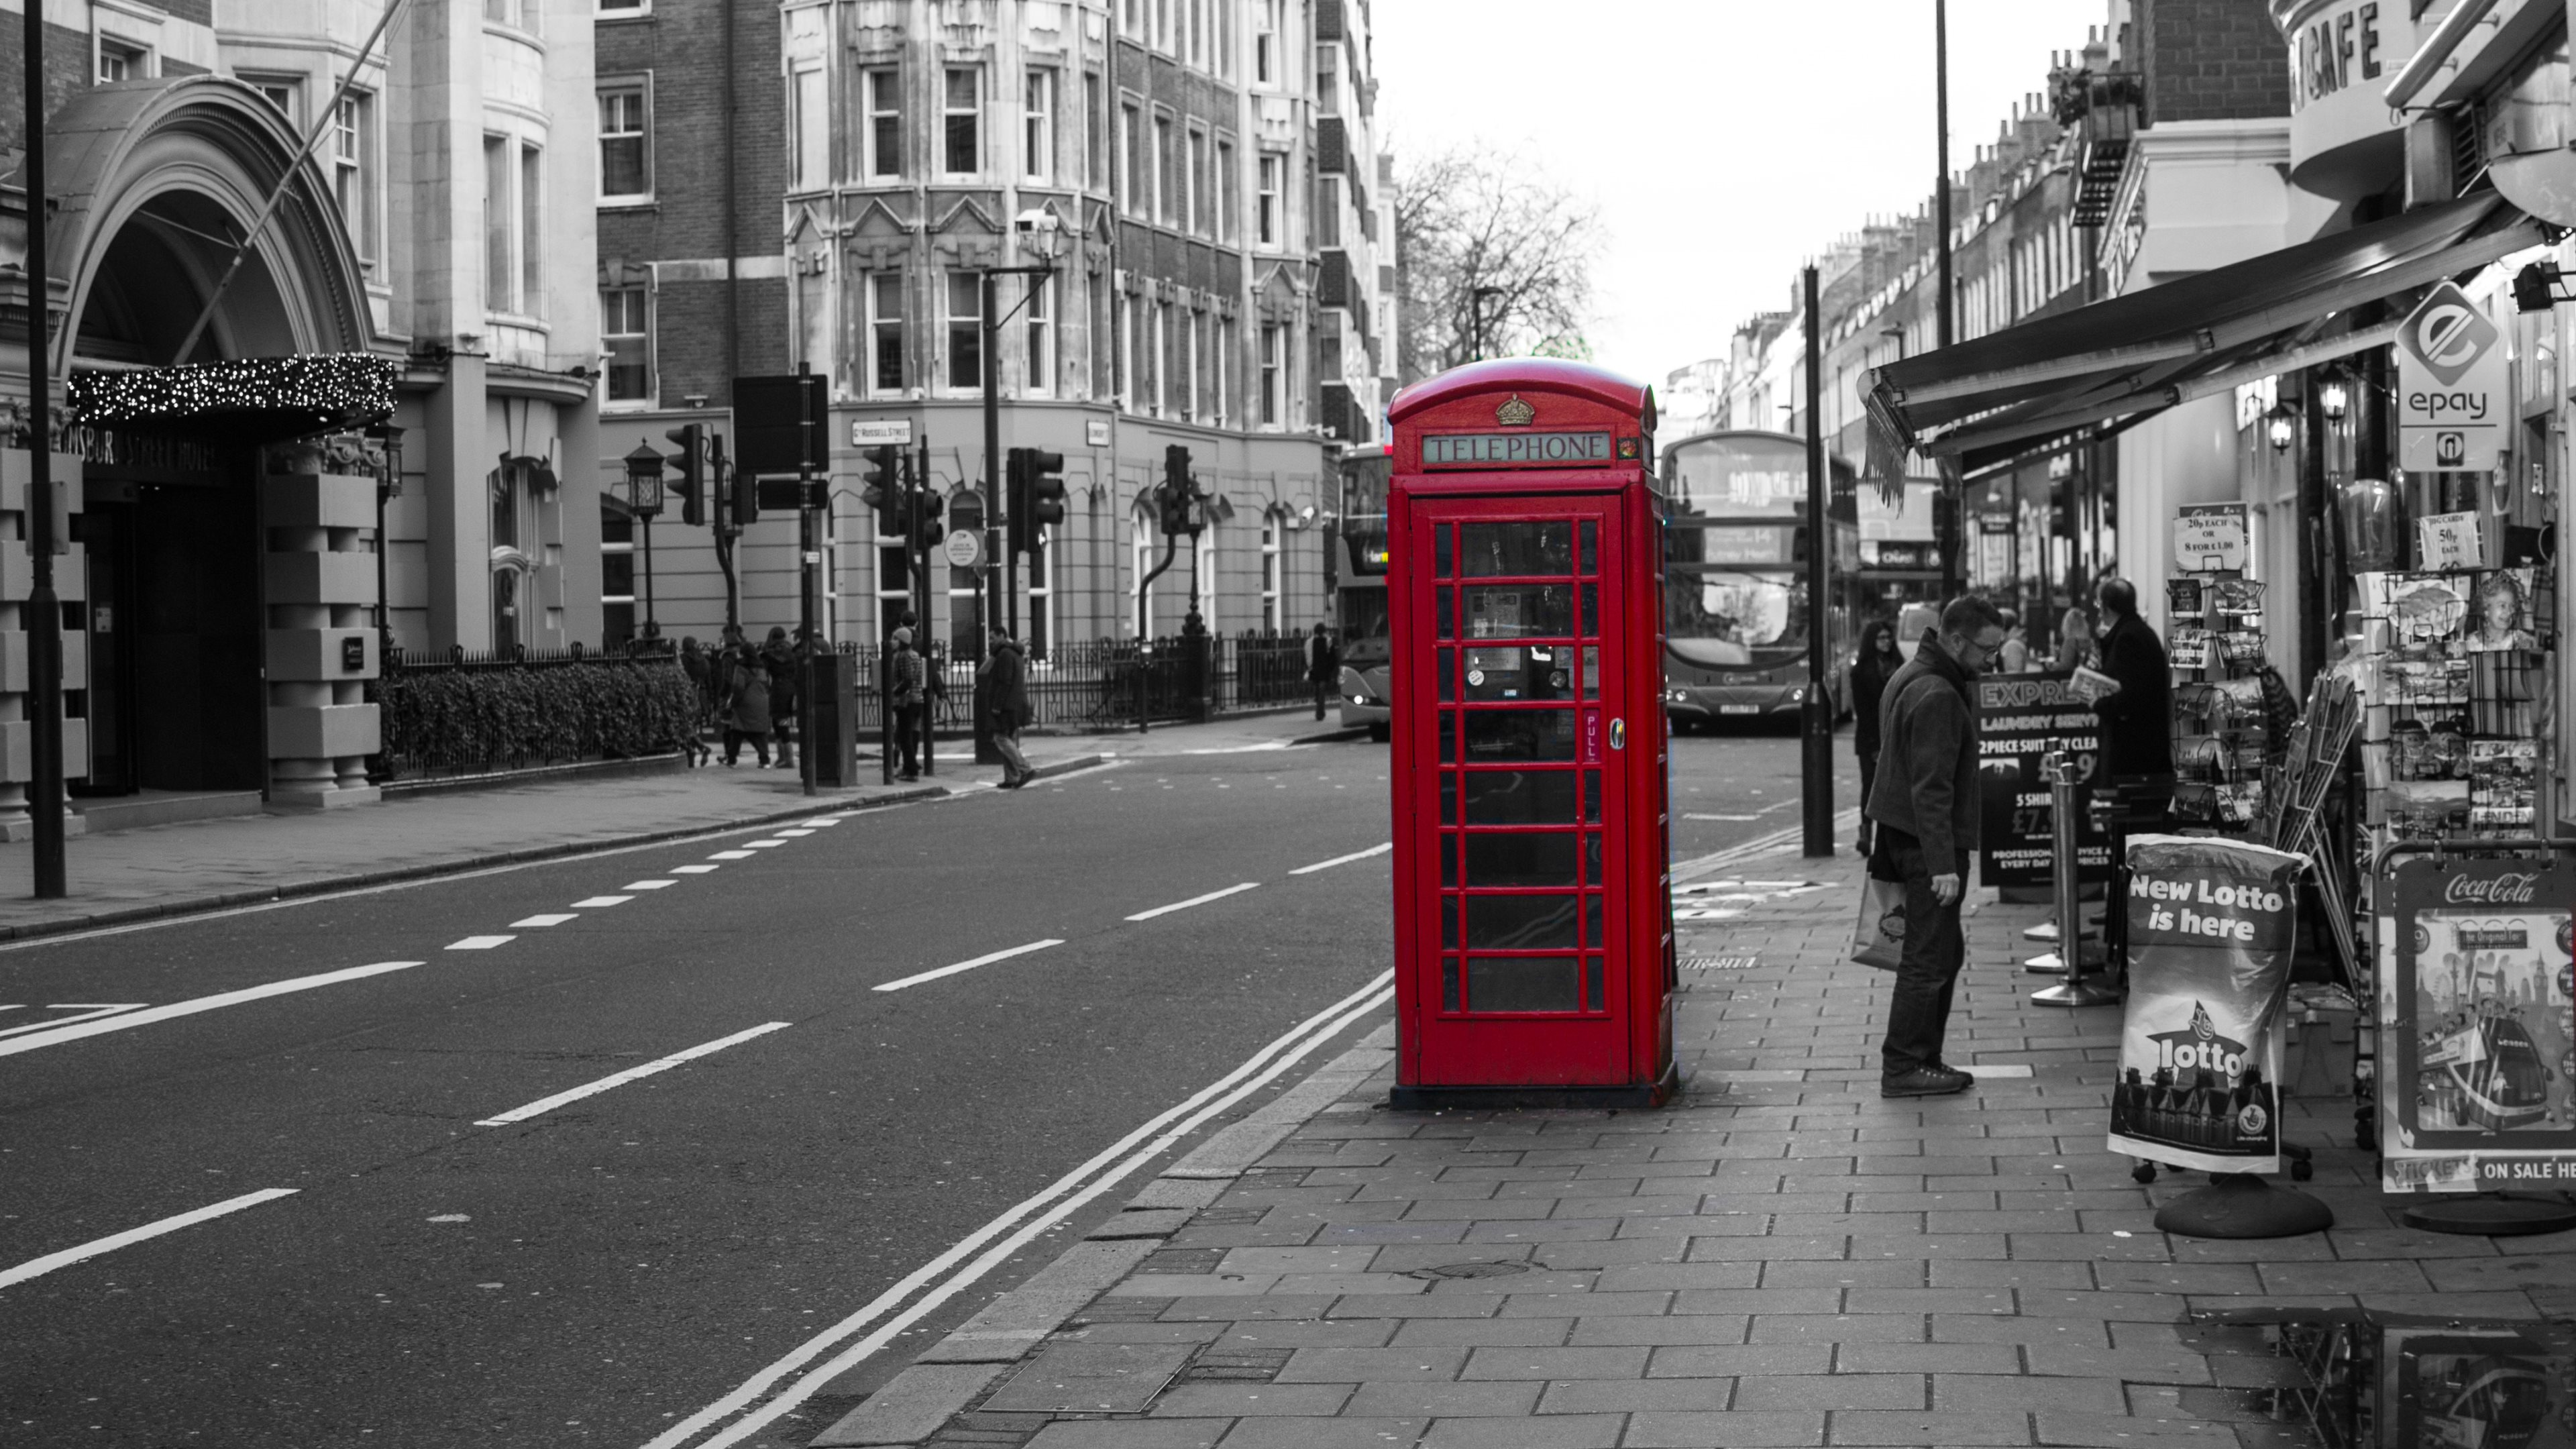 Picalls.com | Telephone booths in London by y.becart.